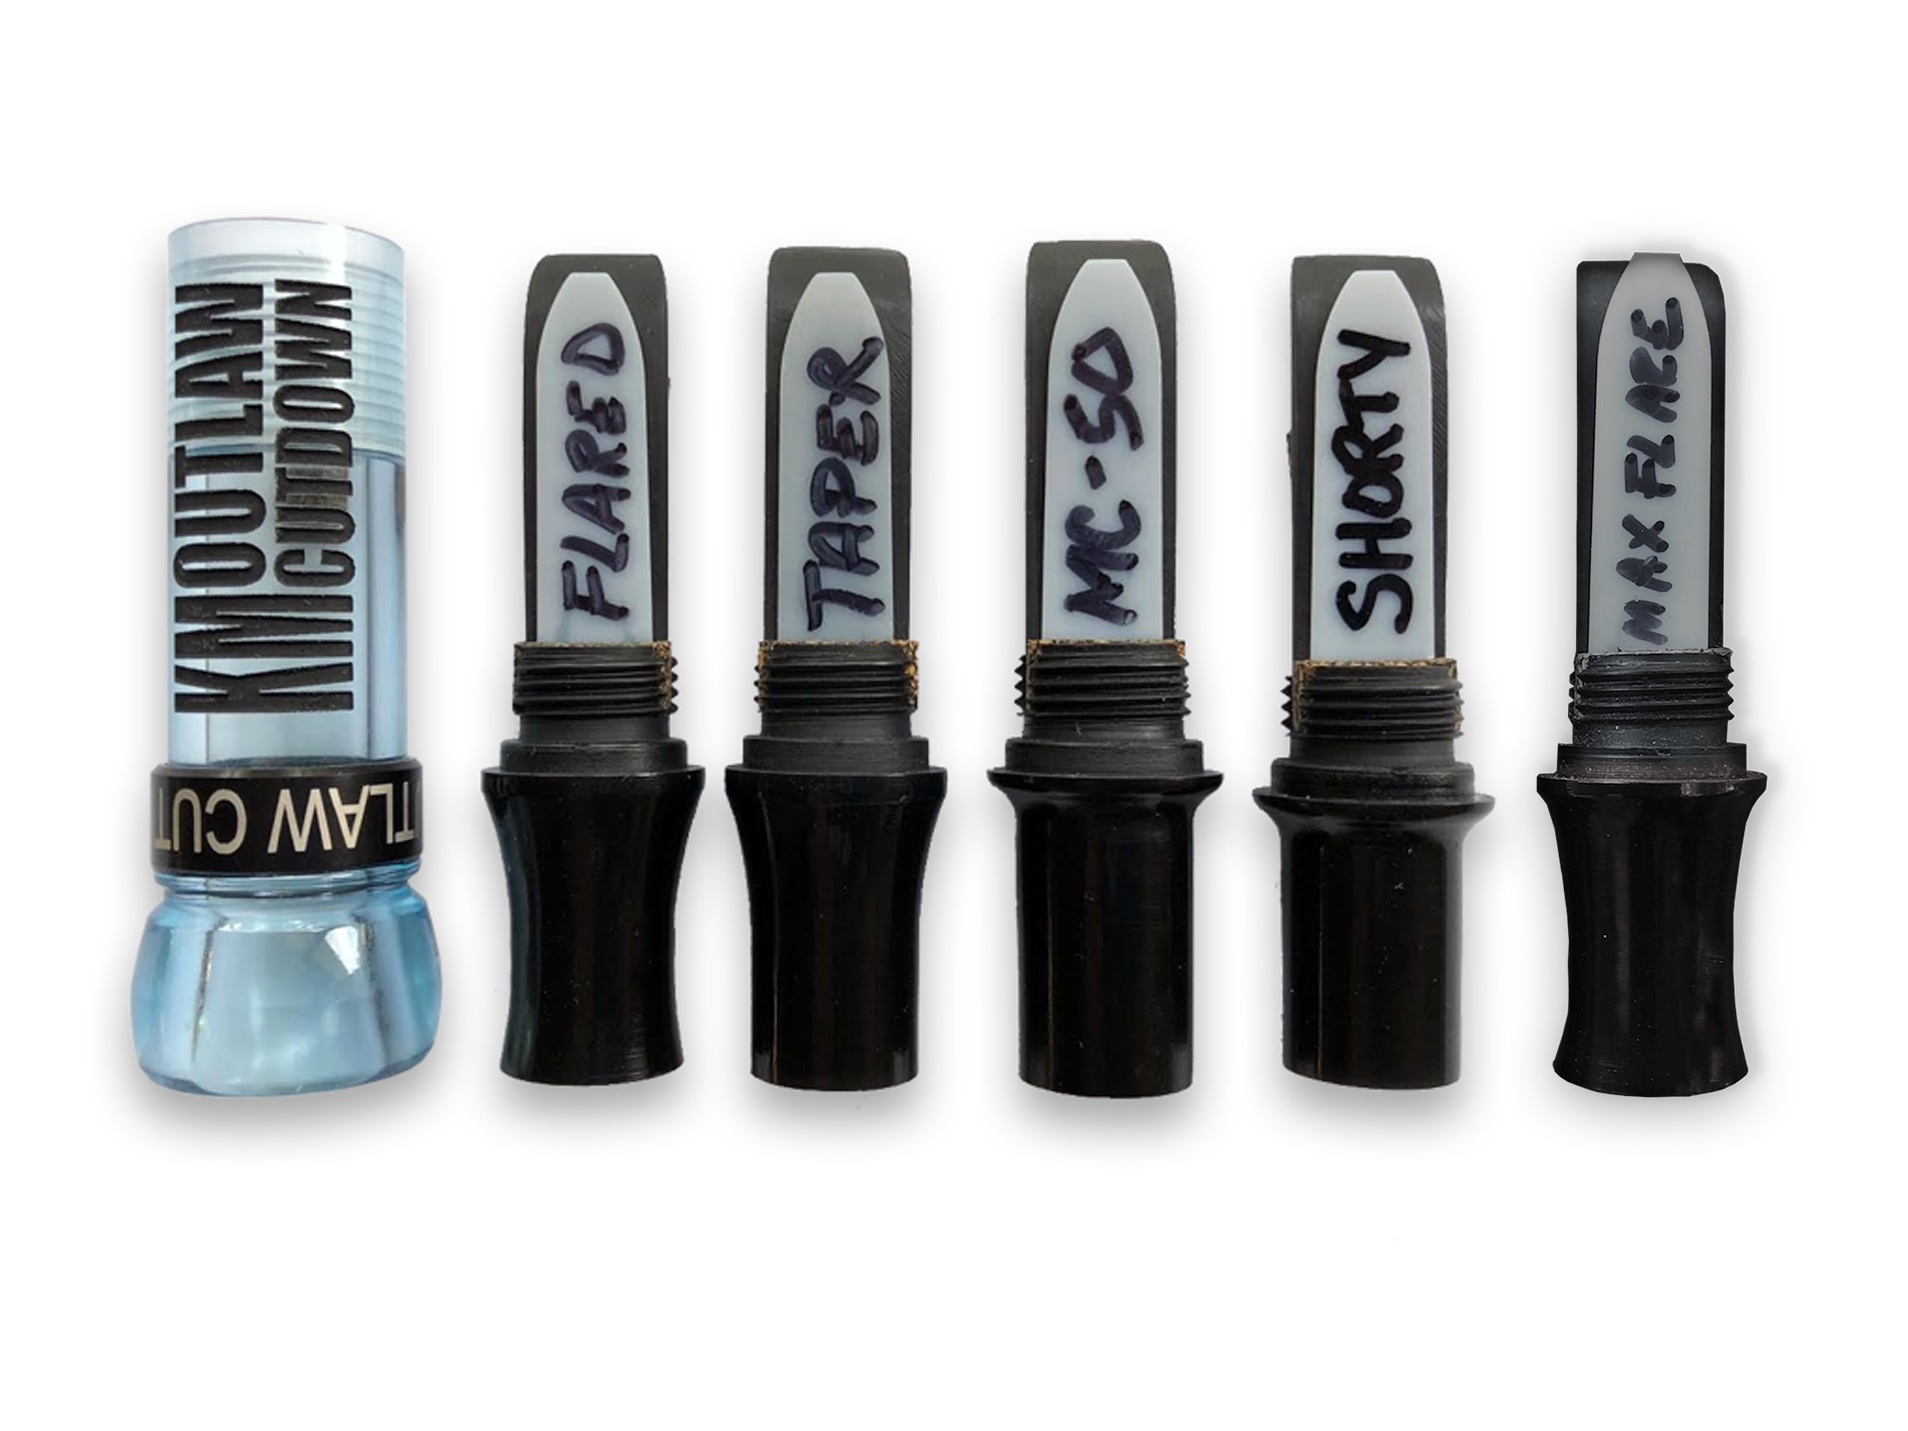 KM OUTLAW CUTDOWN Duck Call Clear Blue and Black Band with 5 Interchangeable Duck Call Cast Mold Inserts